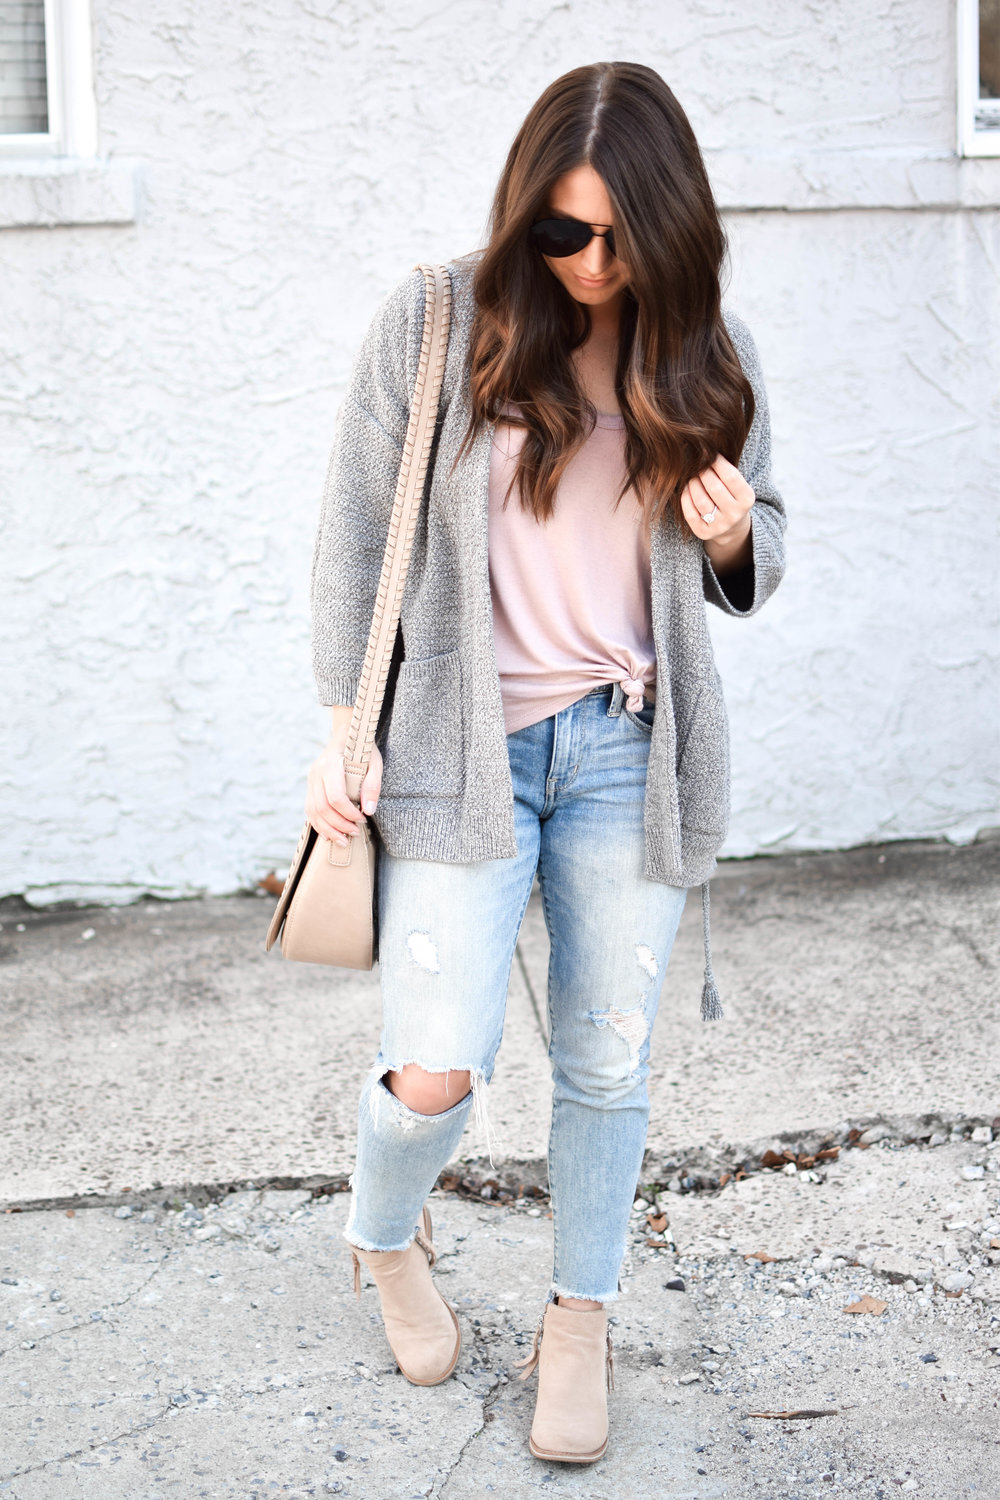 fall fashion / fall outfit idea / fall outfit inspiration / madewell grey lace up cardigan / distressed denim / hair vibes